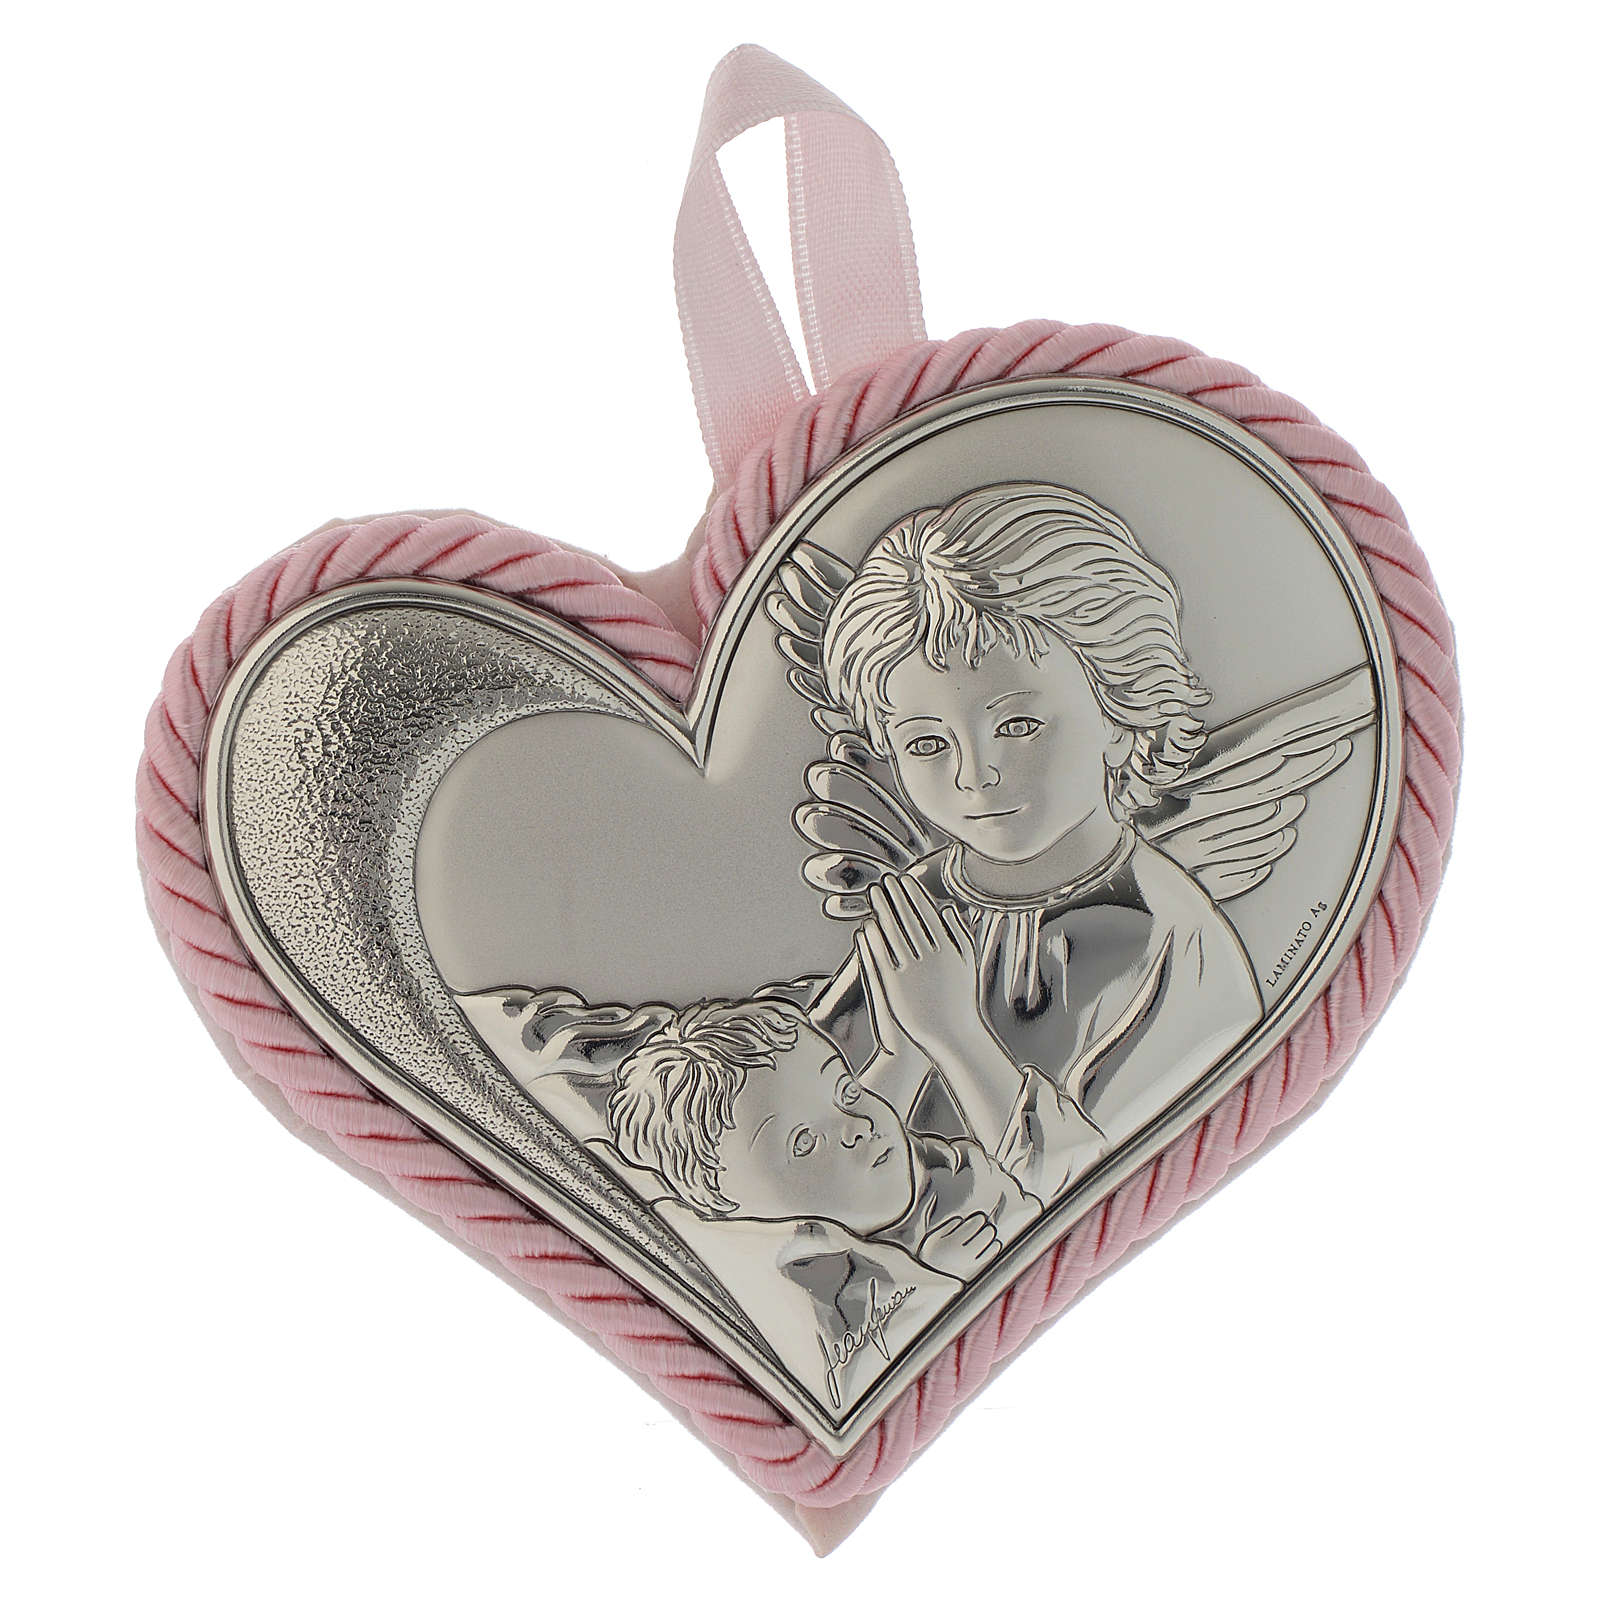 Guardian Angel crib toy with silver plate, heart and musical box, pink colour 4